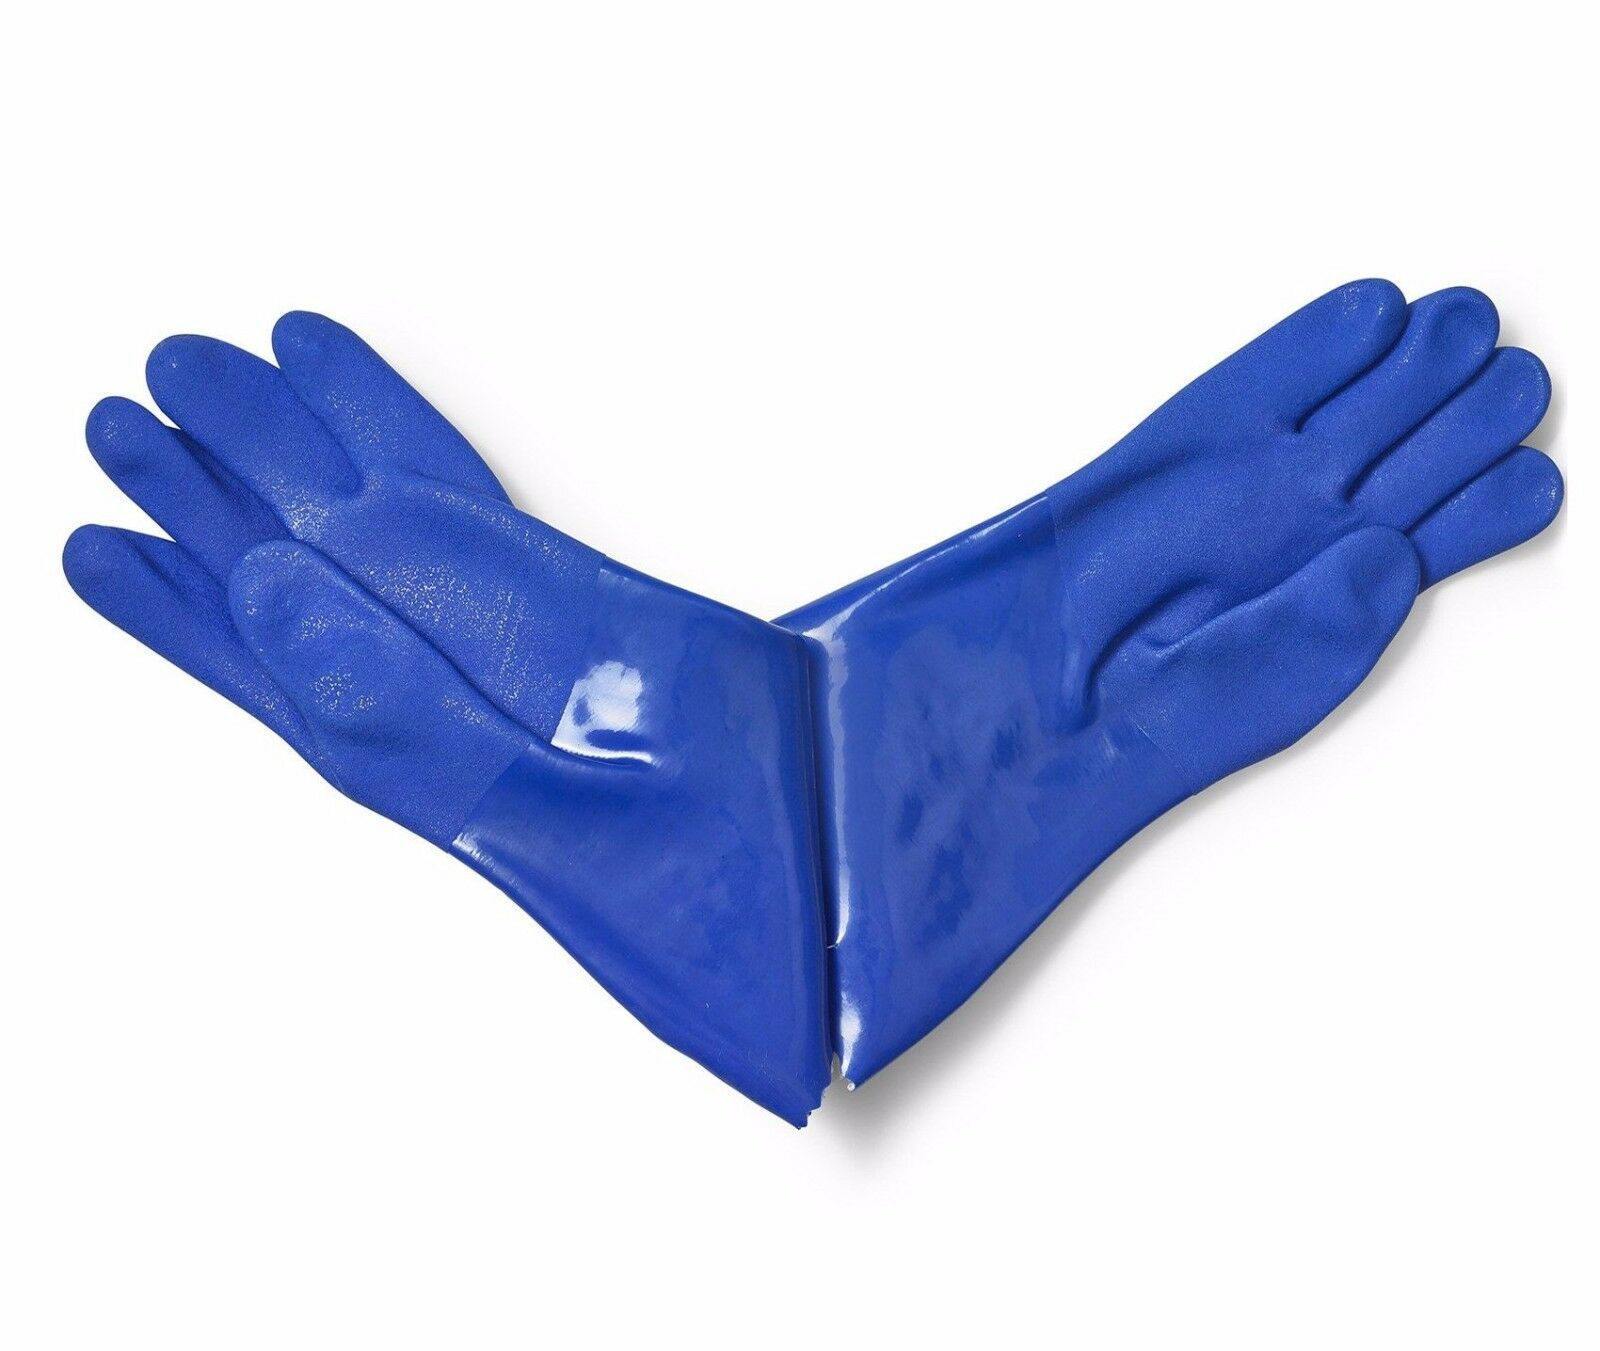 True Blues Gloves Blue Large Star Kitchen 37tbl Cleaning Tools Laundry And